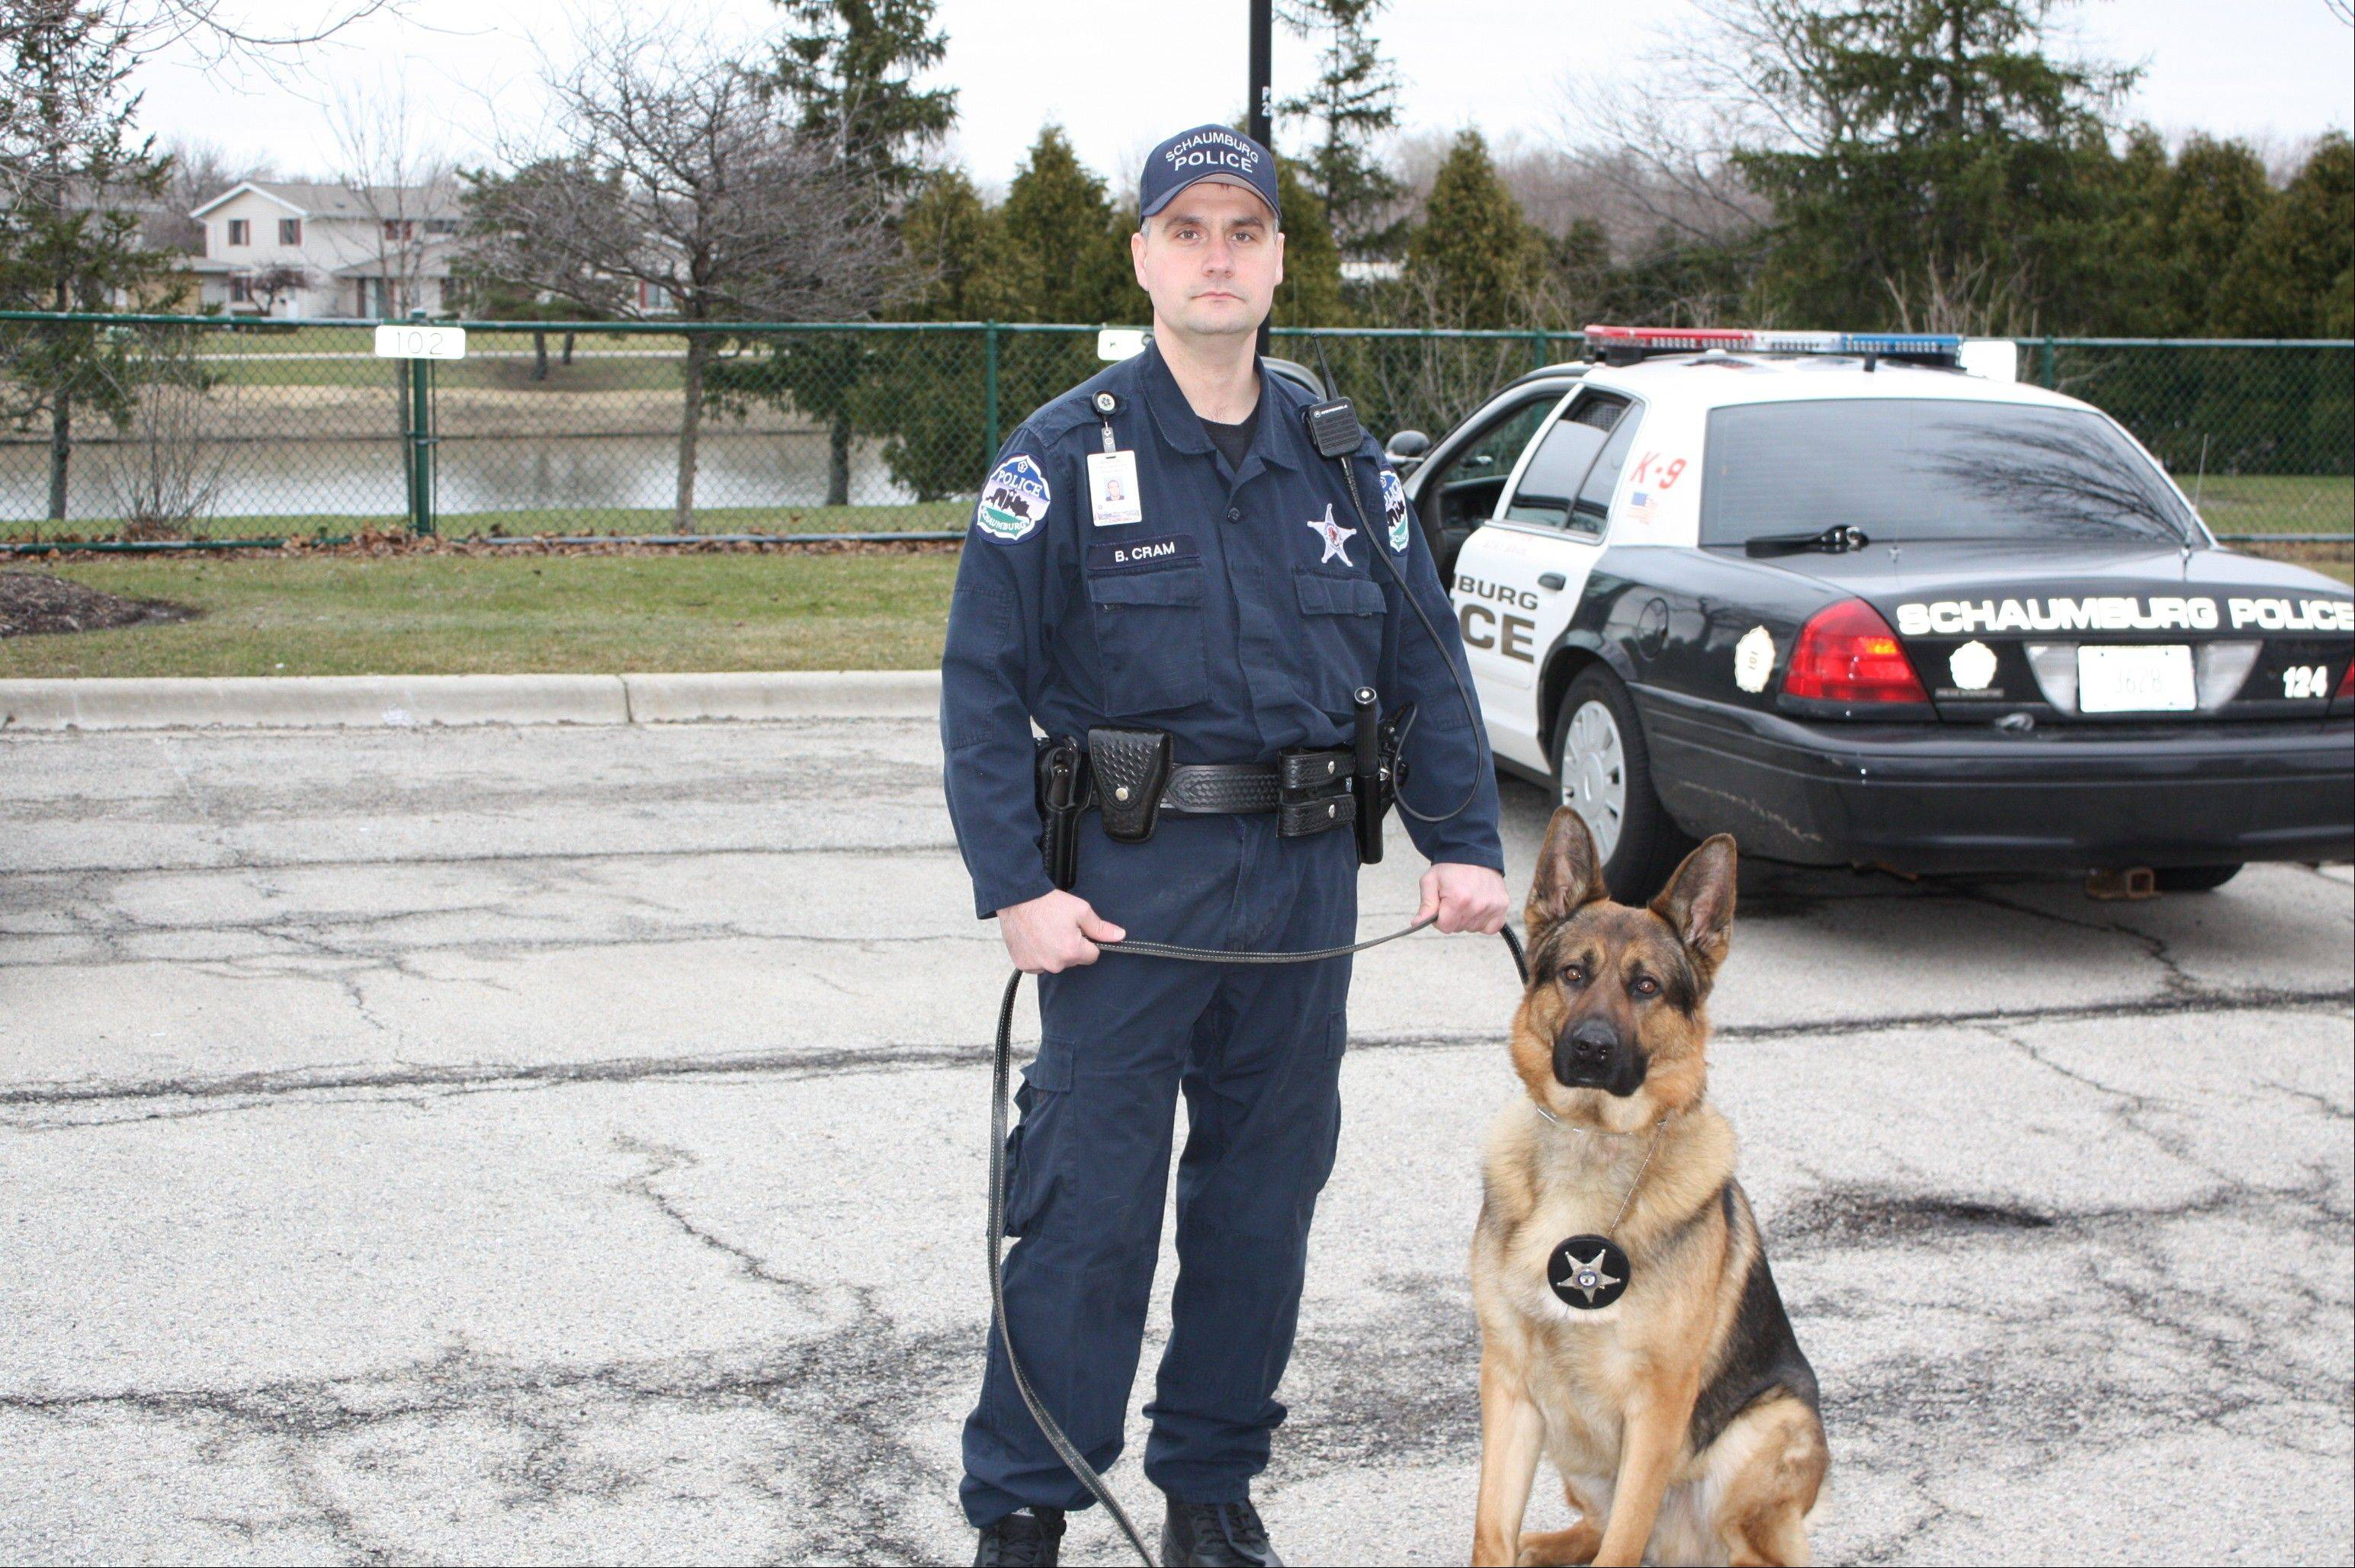 Schaumburg's police dog, Thunder, will retire next month when his handler, Officer Bruce Cram, is promoted to sergeant.